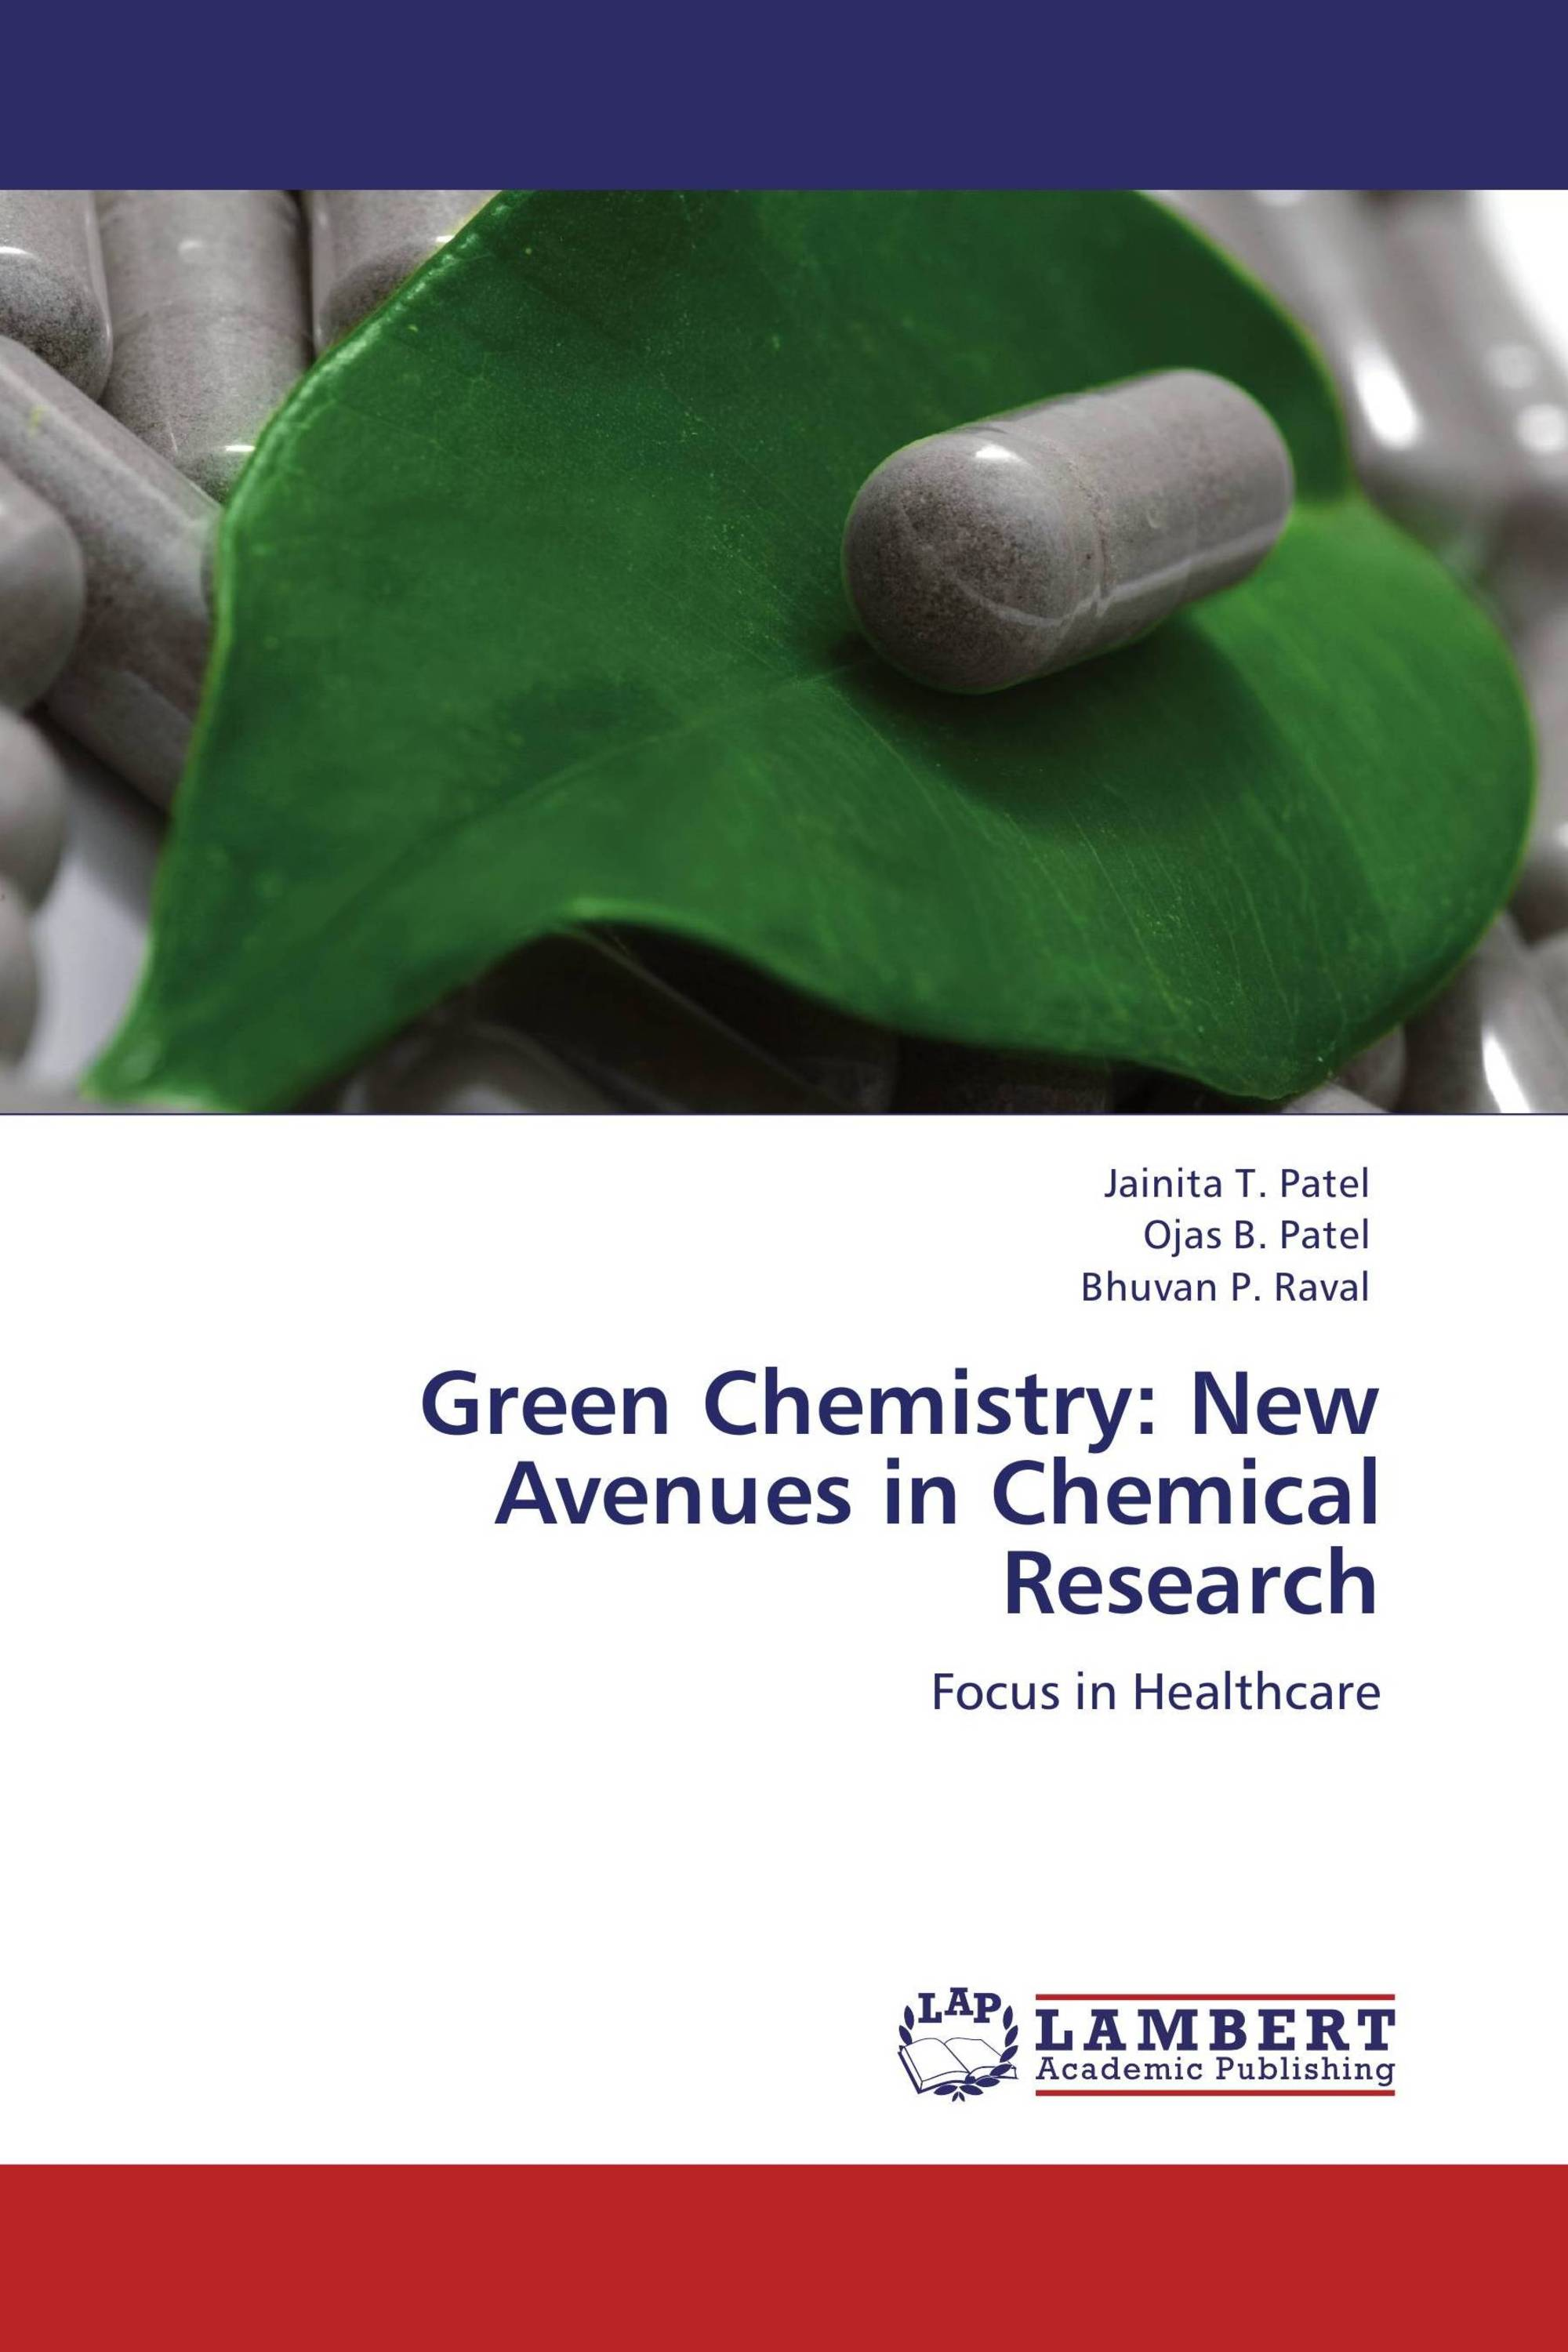 Green Chemistry: New Avenues in Chemical Research